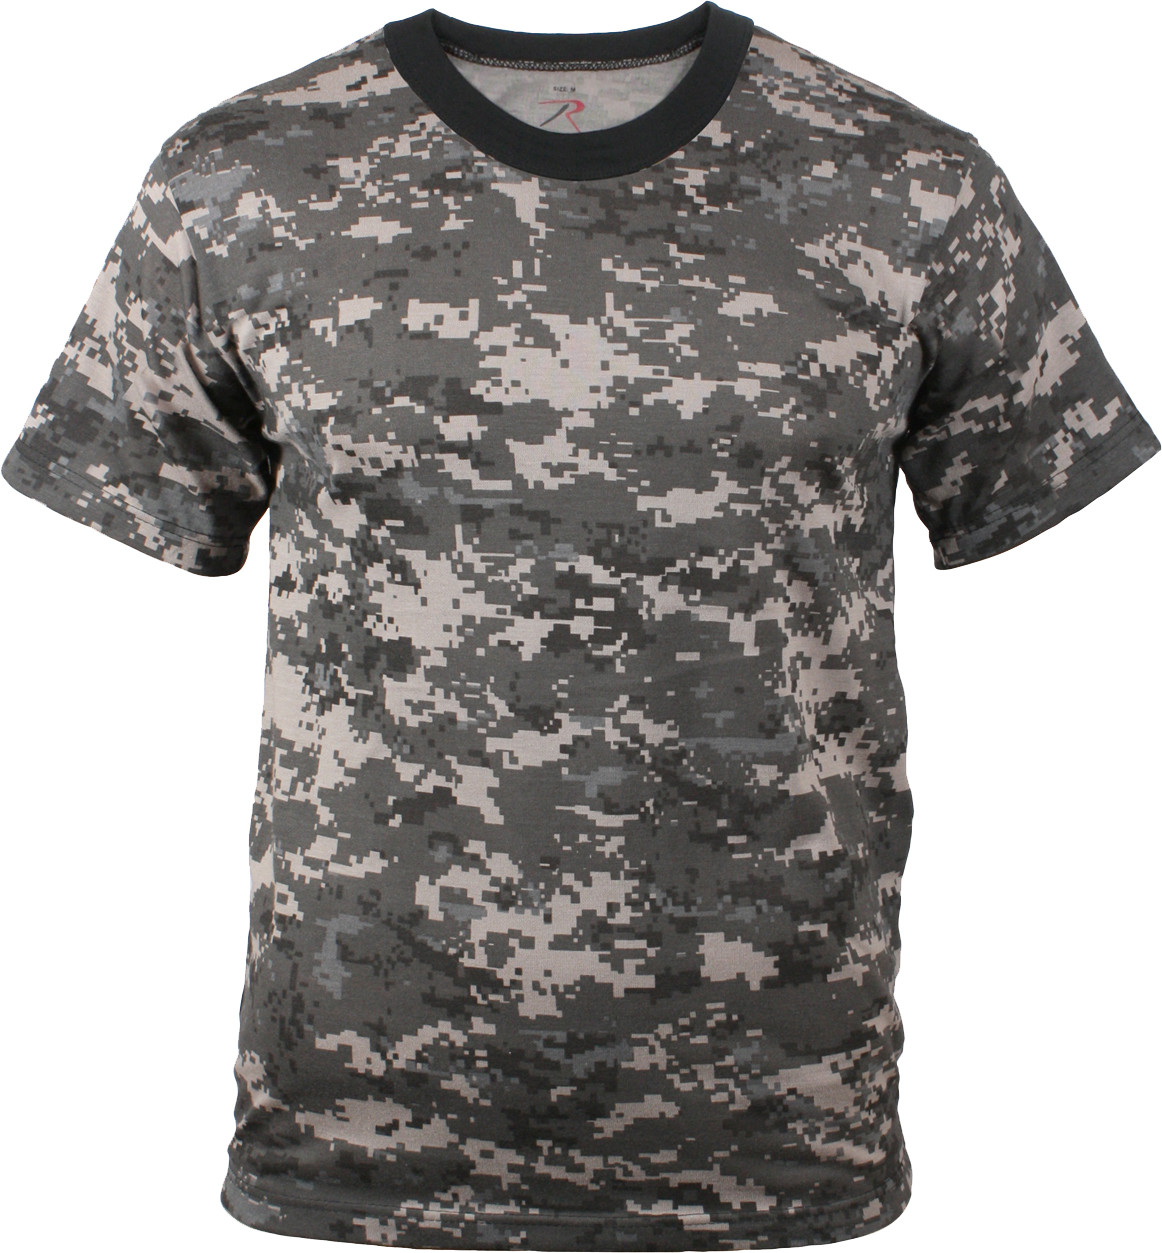 Subdued Urban Digital Camouflage Military Short Sleeve T-Shirt e6957af8950